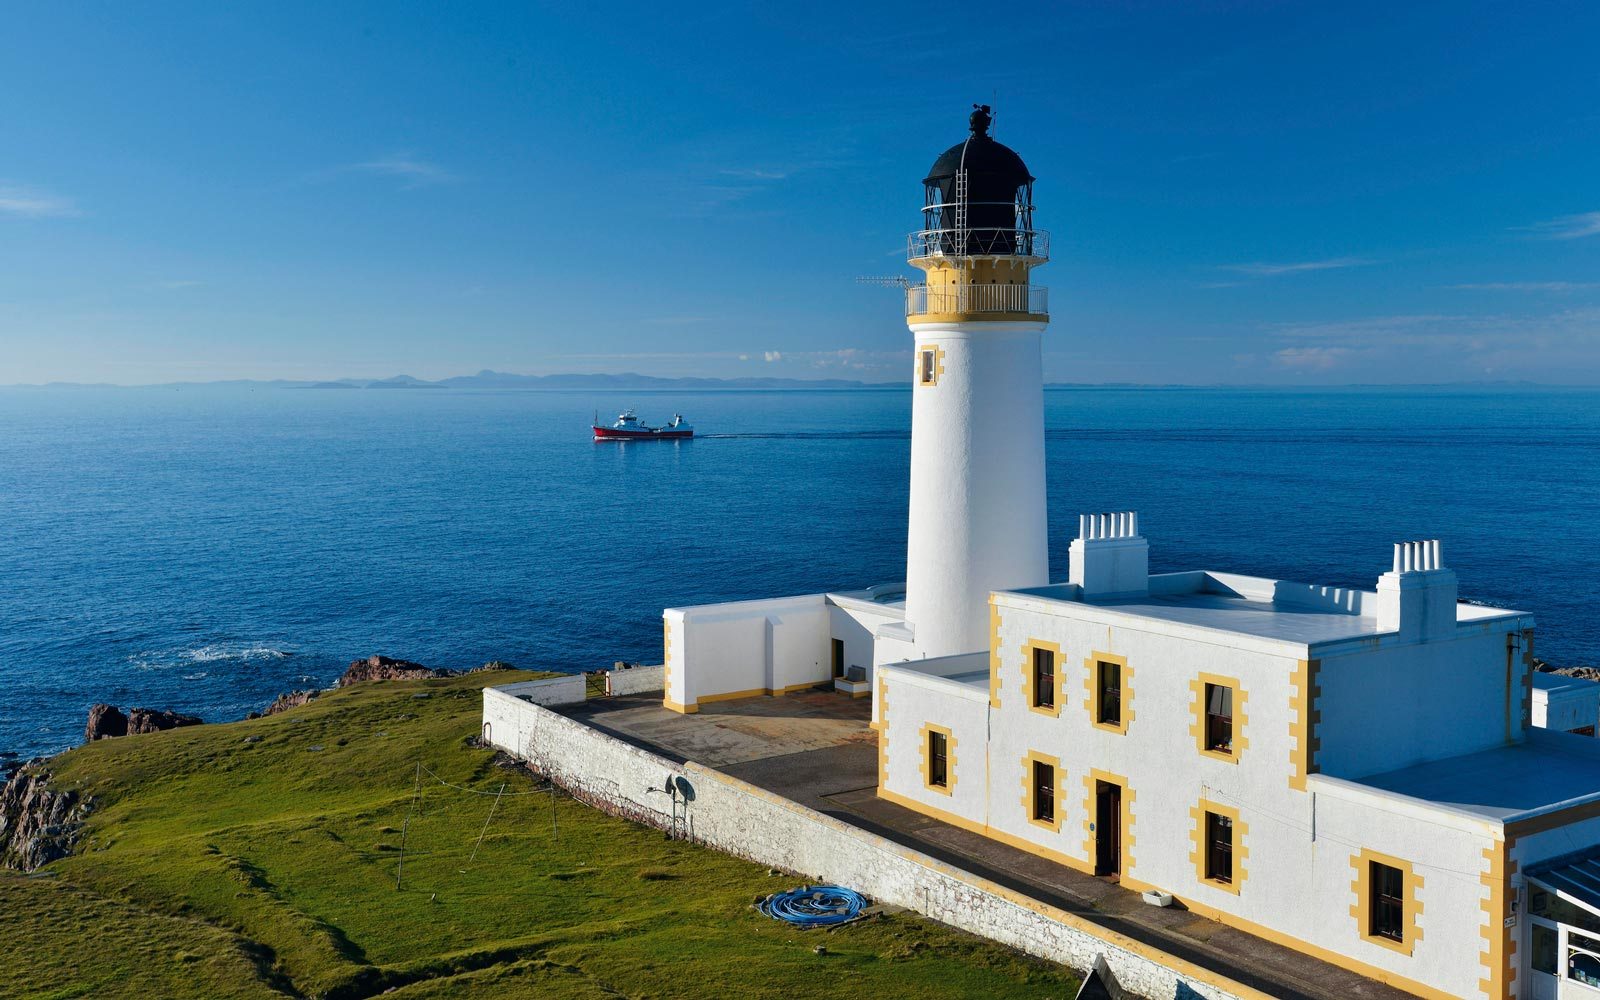 Rua Reidh Lighthouse, Scotland